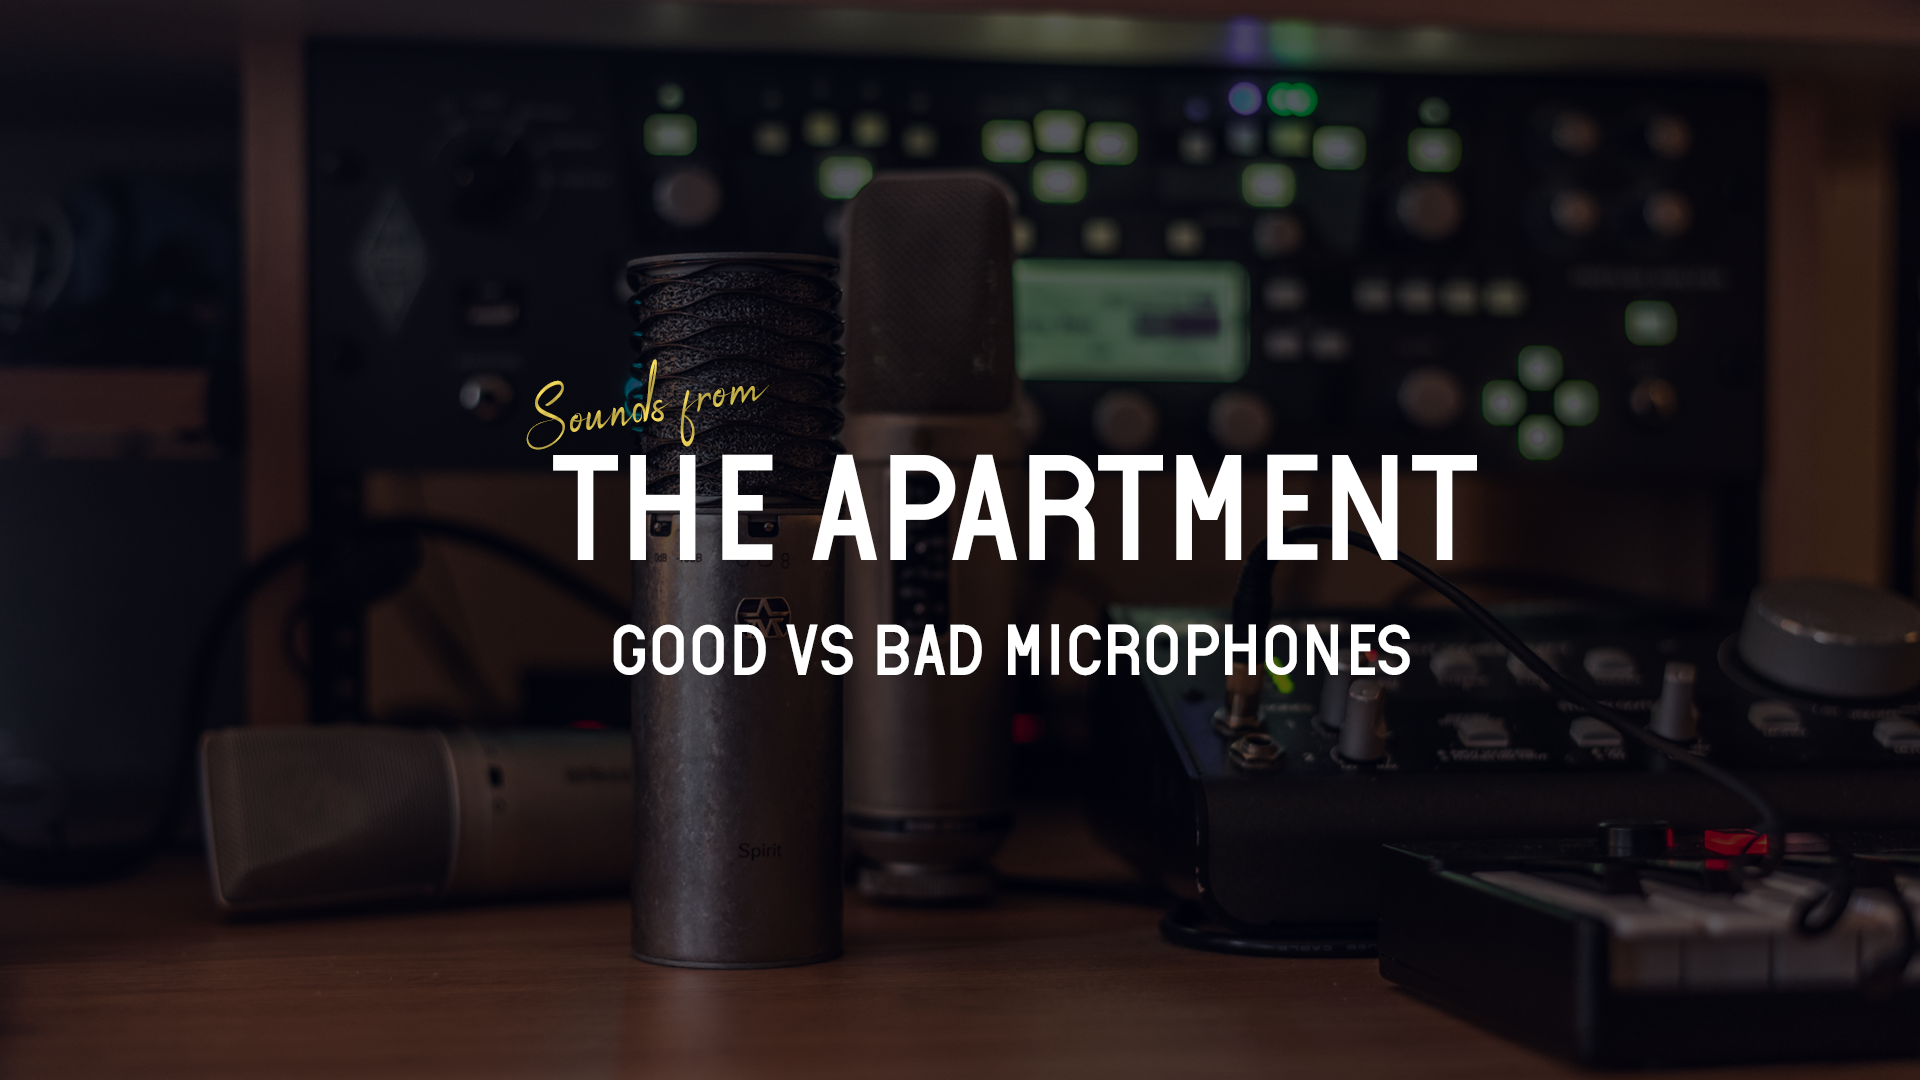 Sounds from the apartment article good vs bad microphones